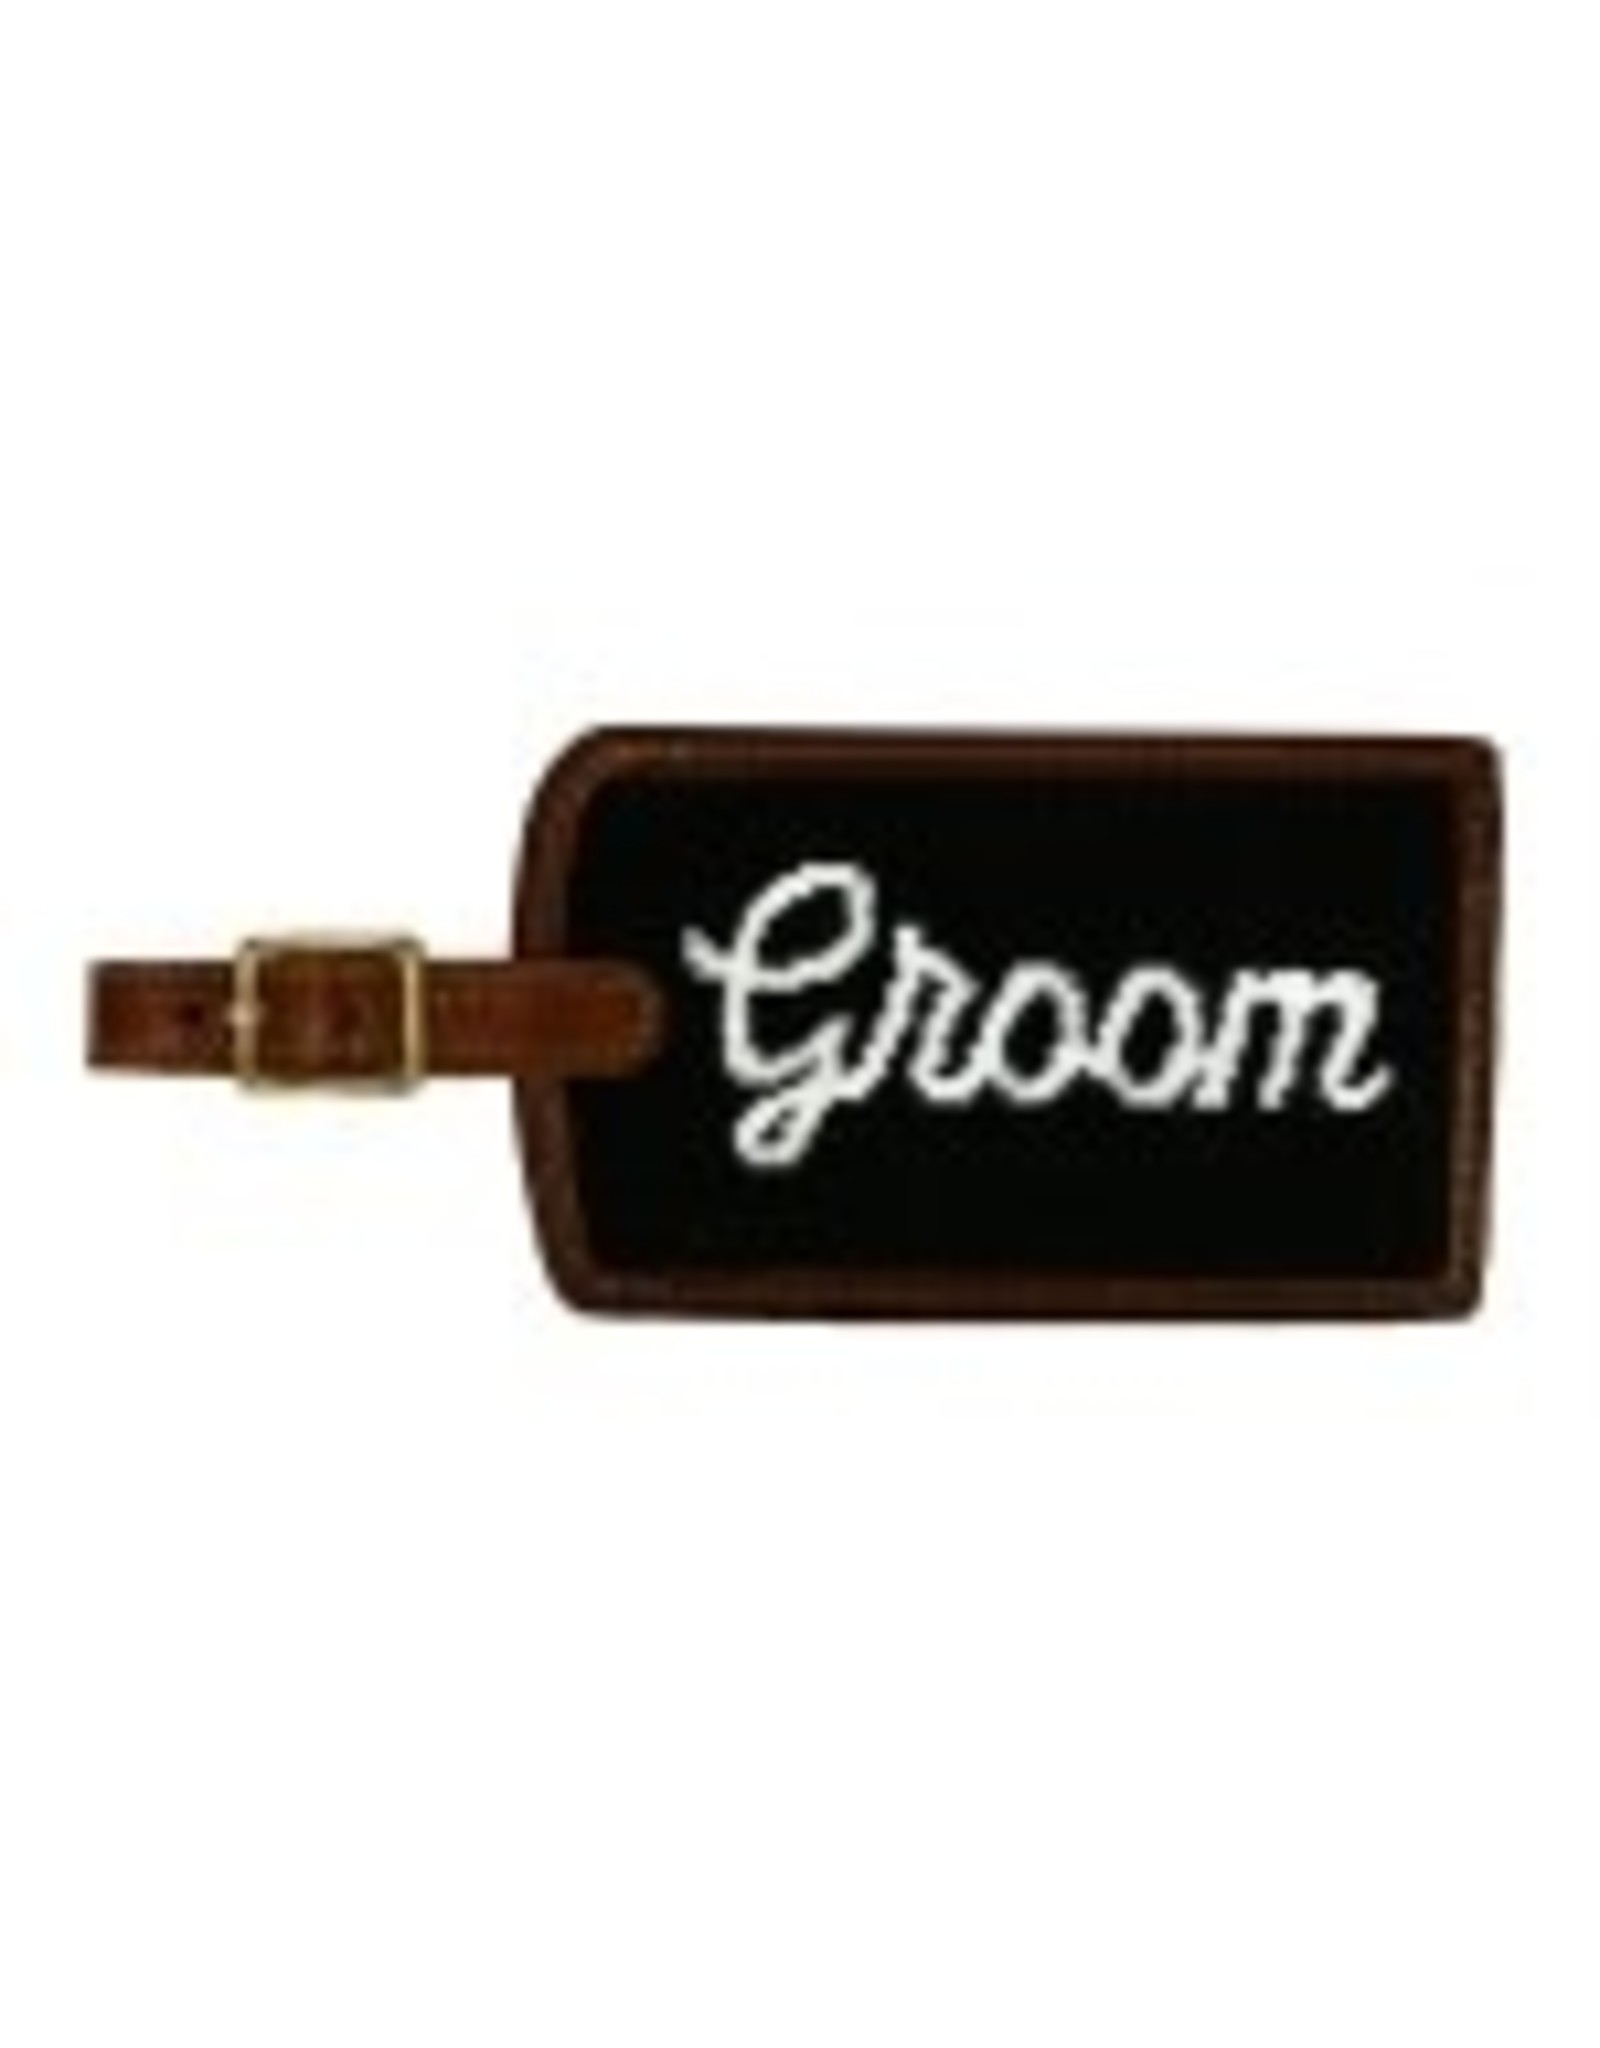 Smathers & Branson Groom Luggage Tag